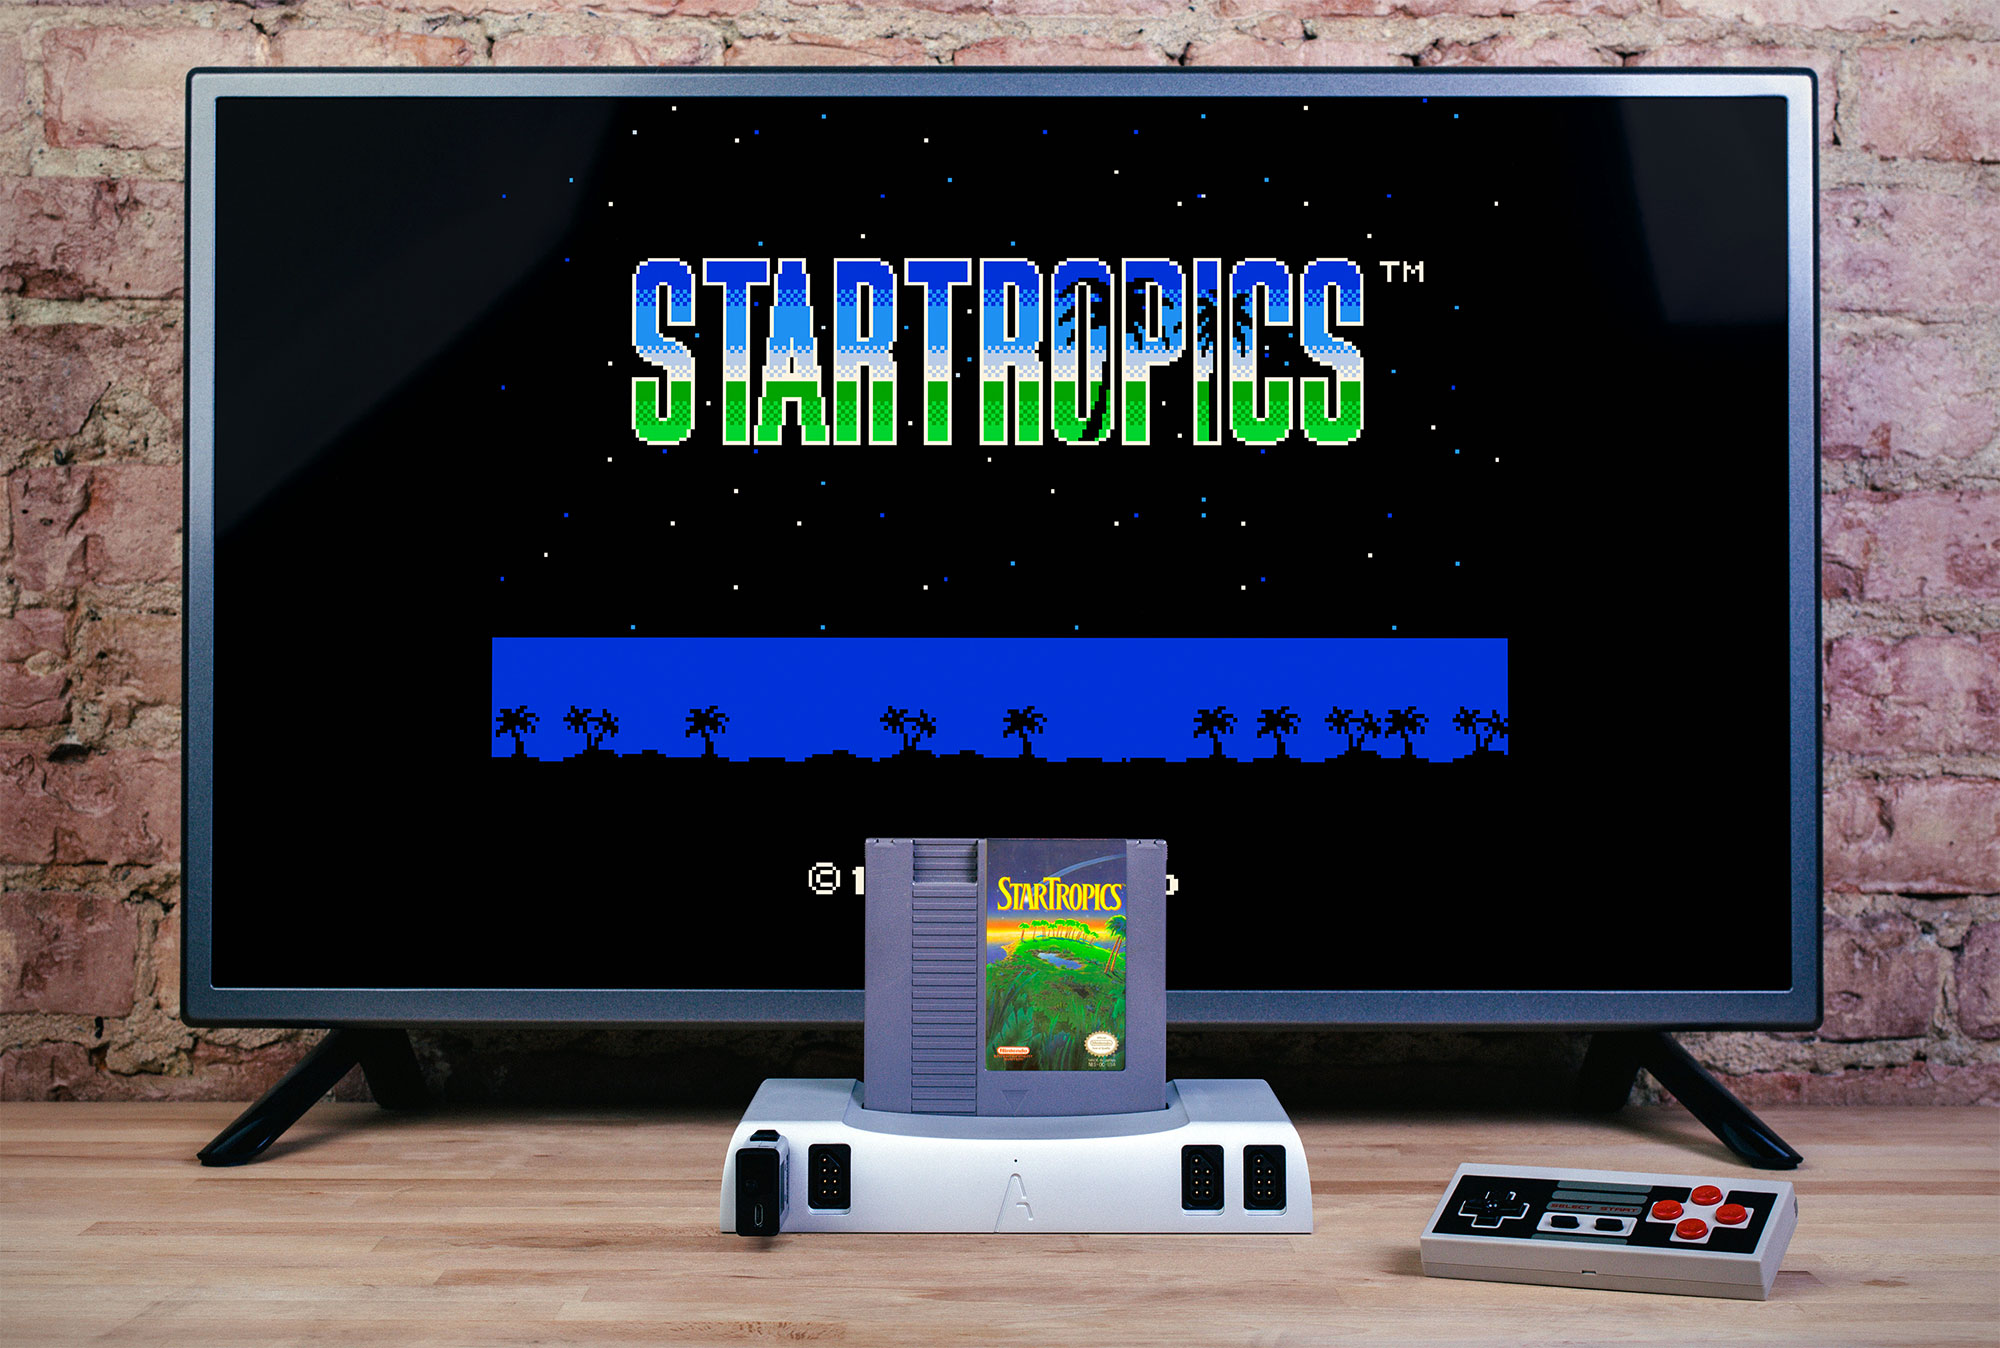 The Nintendo inspired Analogue NT.